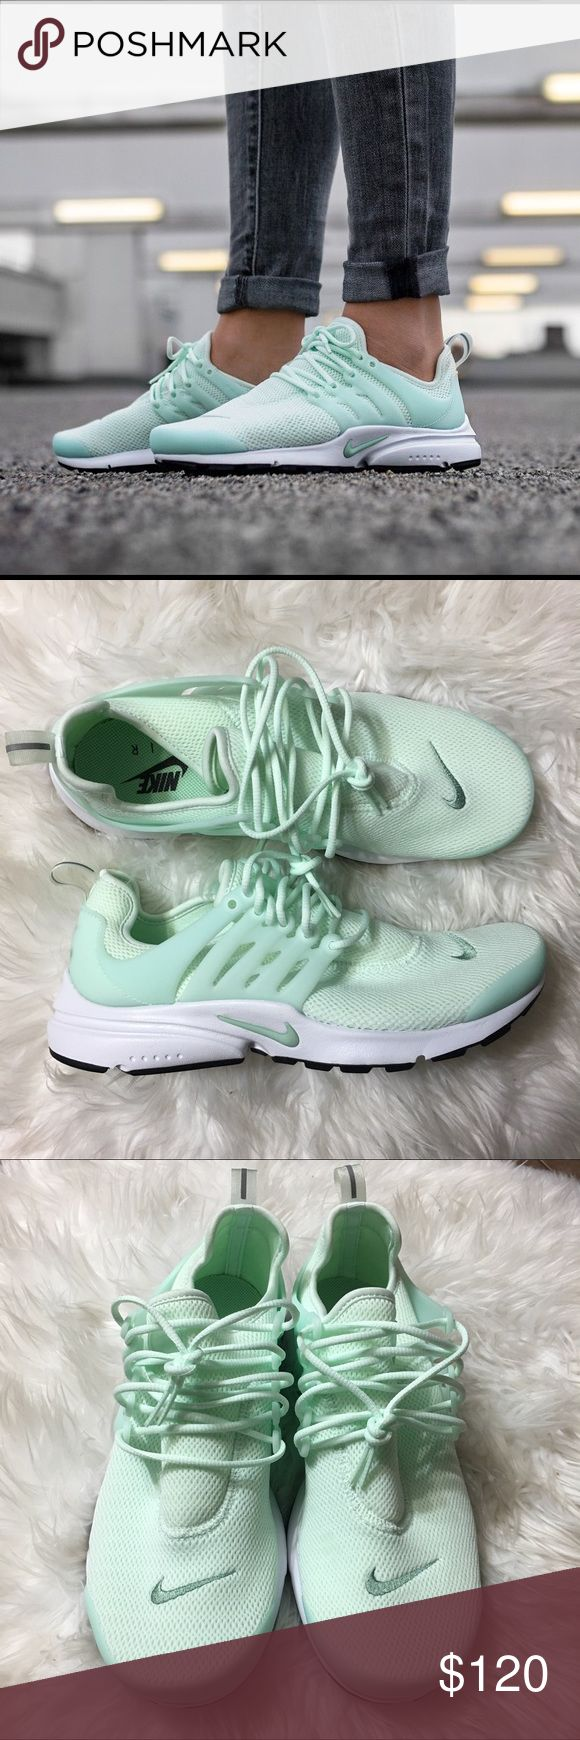 MAKE AN OFFER Nike Air Presto BRAND NEW- ORIGINAL BOX NO LID  ✅PRICE CAN BE NEGOTIATED THROUGH OFFER BUTTON                                                                                                             ✅NEXT DAY SHIPPING ✅BUNDLES DISCOUNT                                                                  NO TRADES NO LOWBALLING Nike Shoes Athletic Shoes